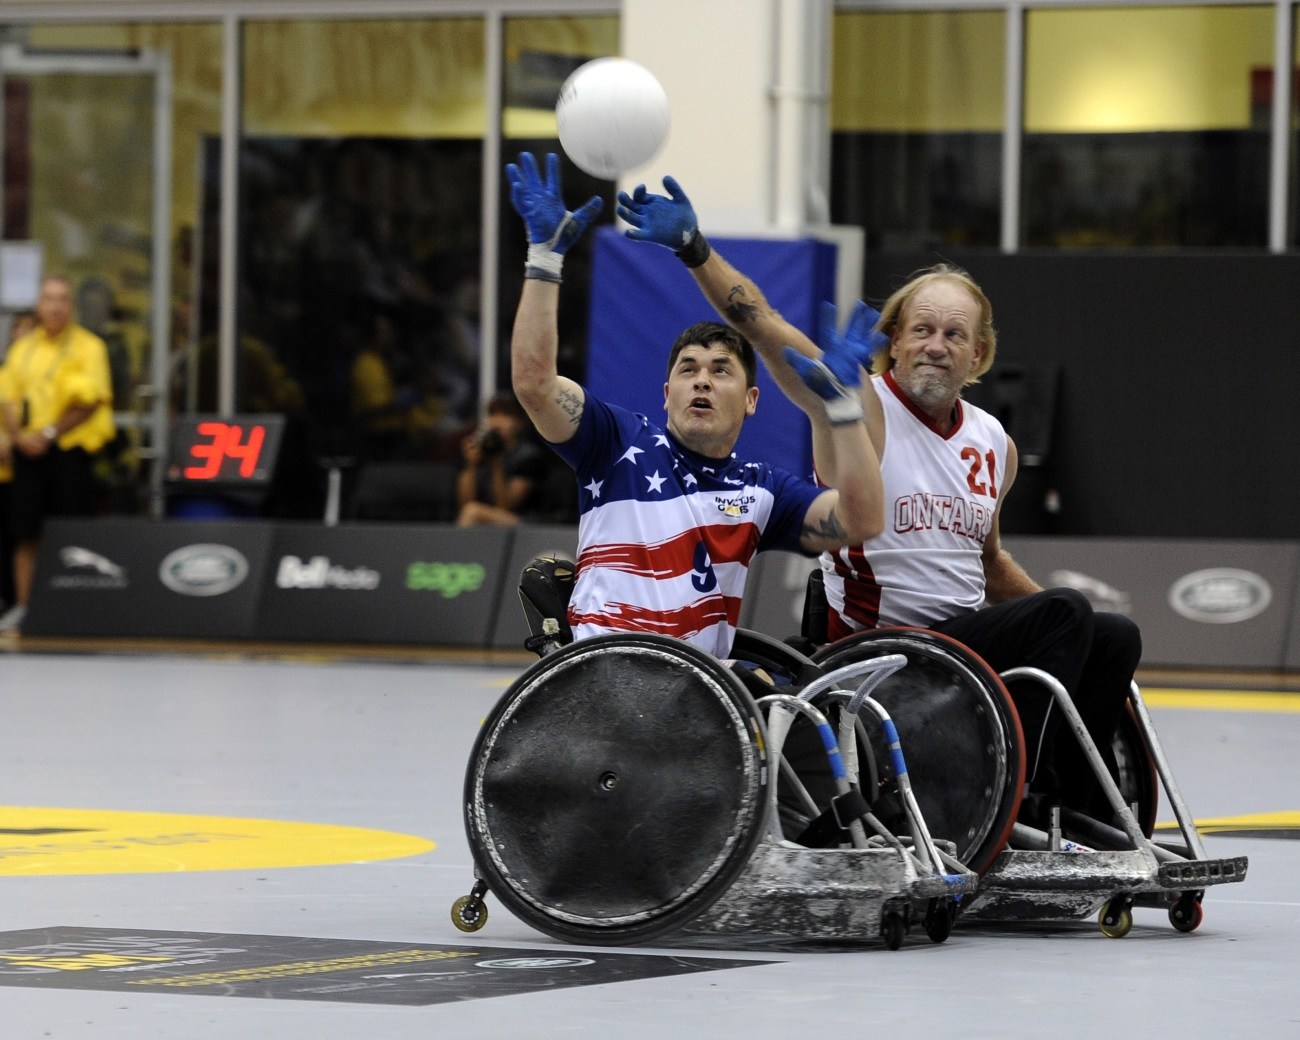 U.S. Marine Corps Sgt. Ivan Sears intercepts a pass during a wheelchair rugby match against the Italian team during the 2017 Invictus Games at the Mattamy Athlethics Centre in Toronto, Canada, on Sept. 27, 2017. The Invictus Games are the sole international adaptive sporting event for injured active-duty and veteran service members. (Staff Sgt. Jannelle McRae/Air Force)